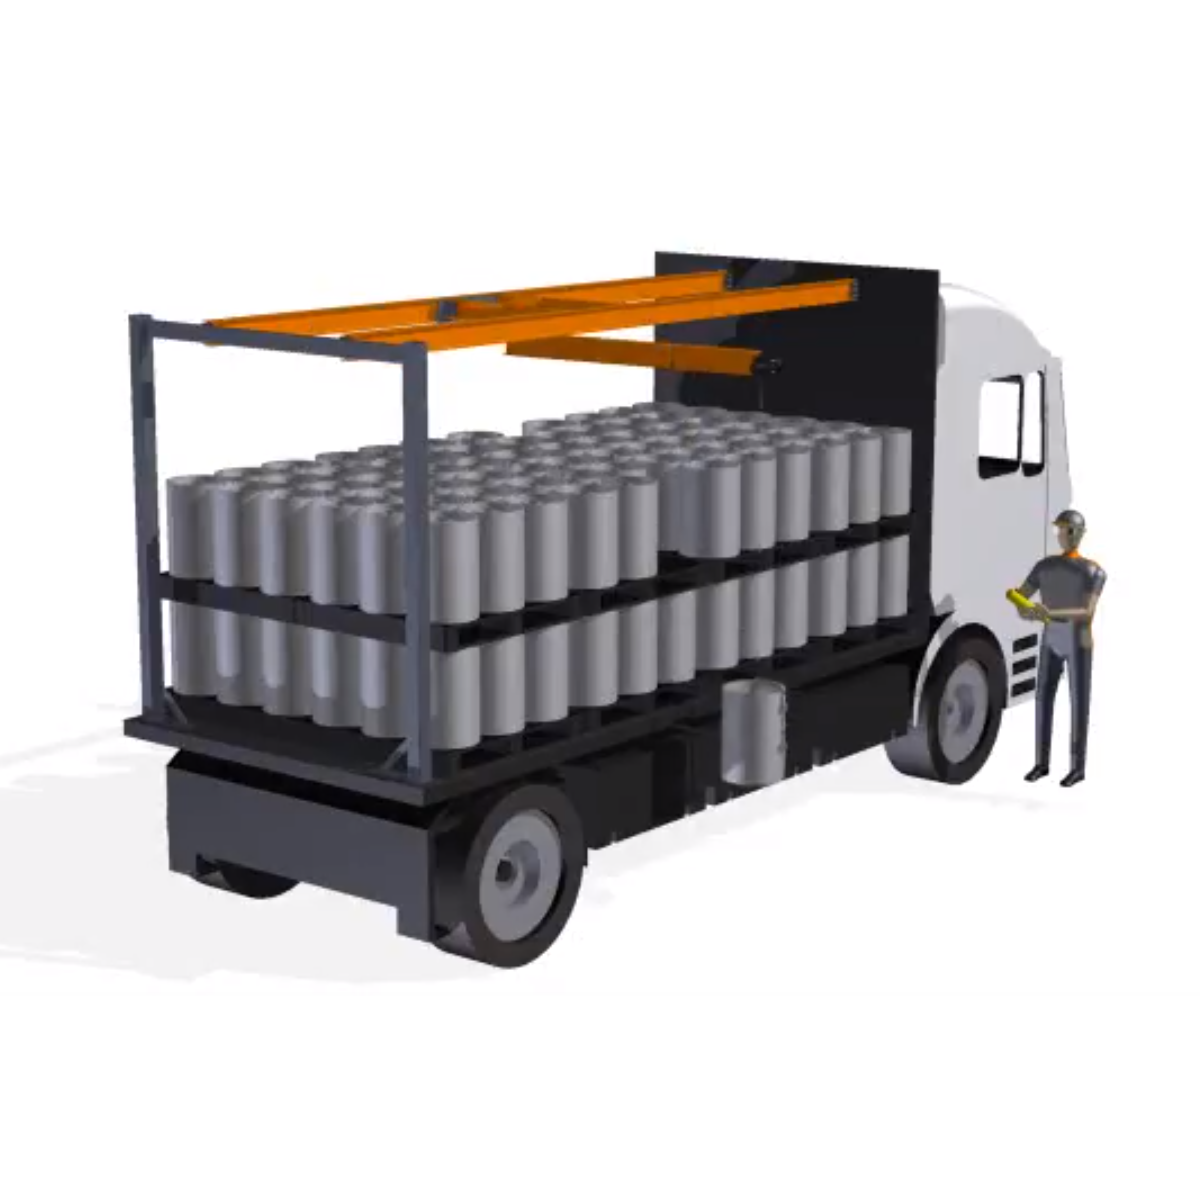 Safe Lift System for Trucks